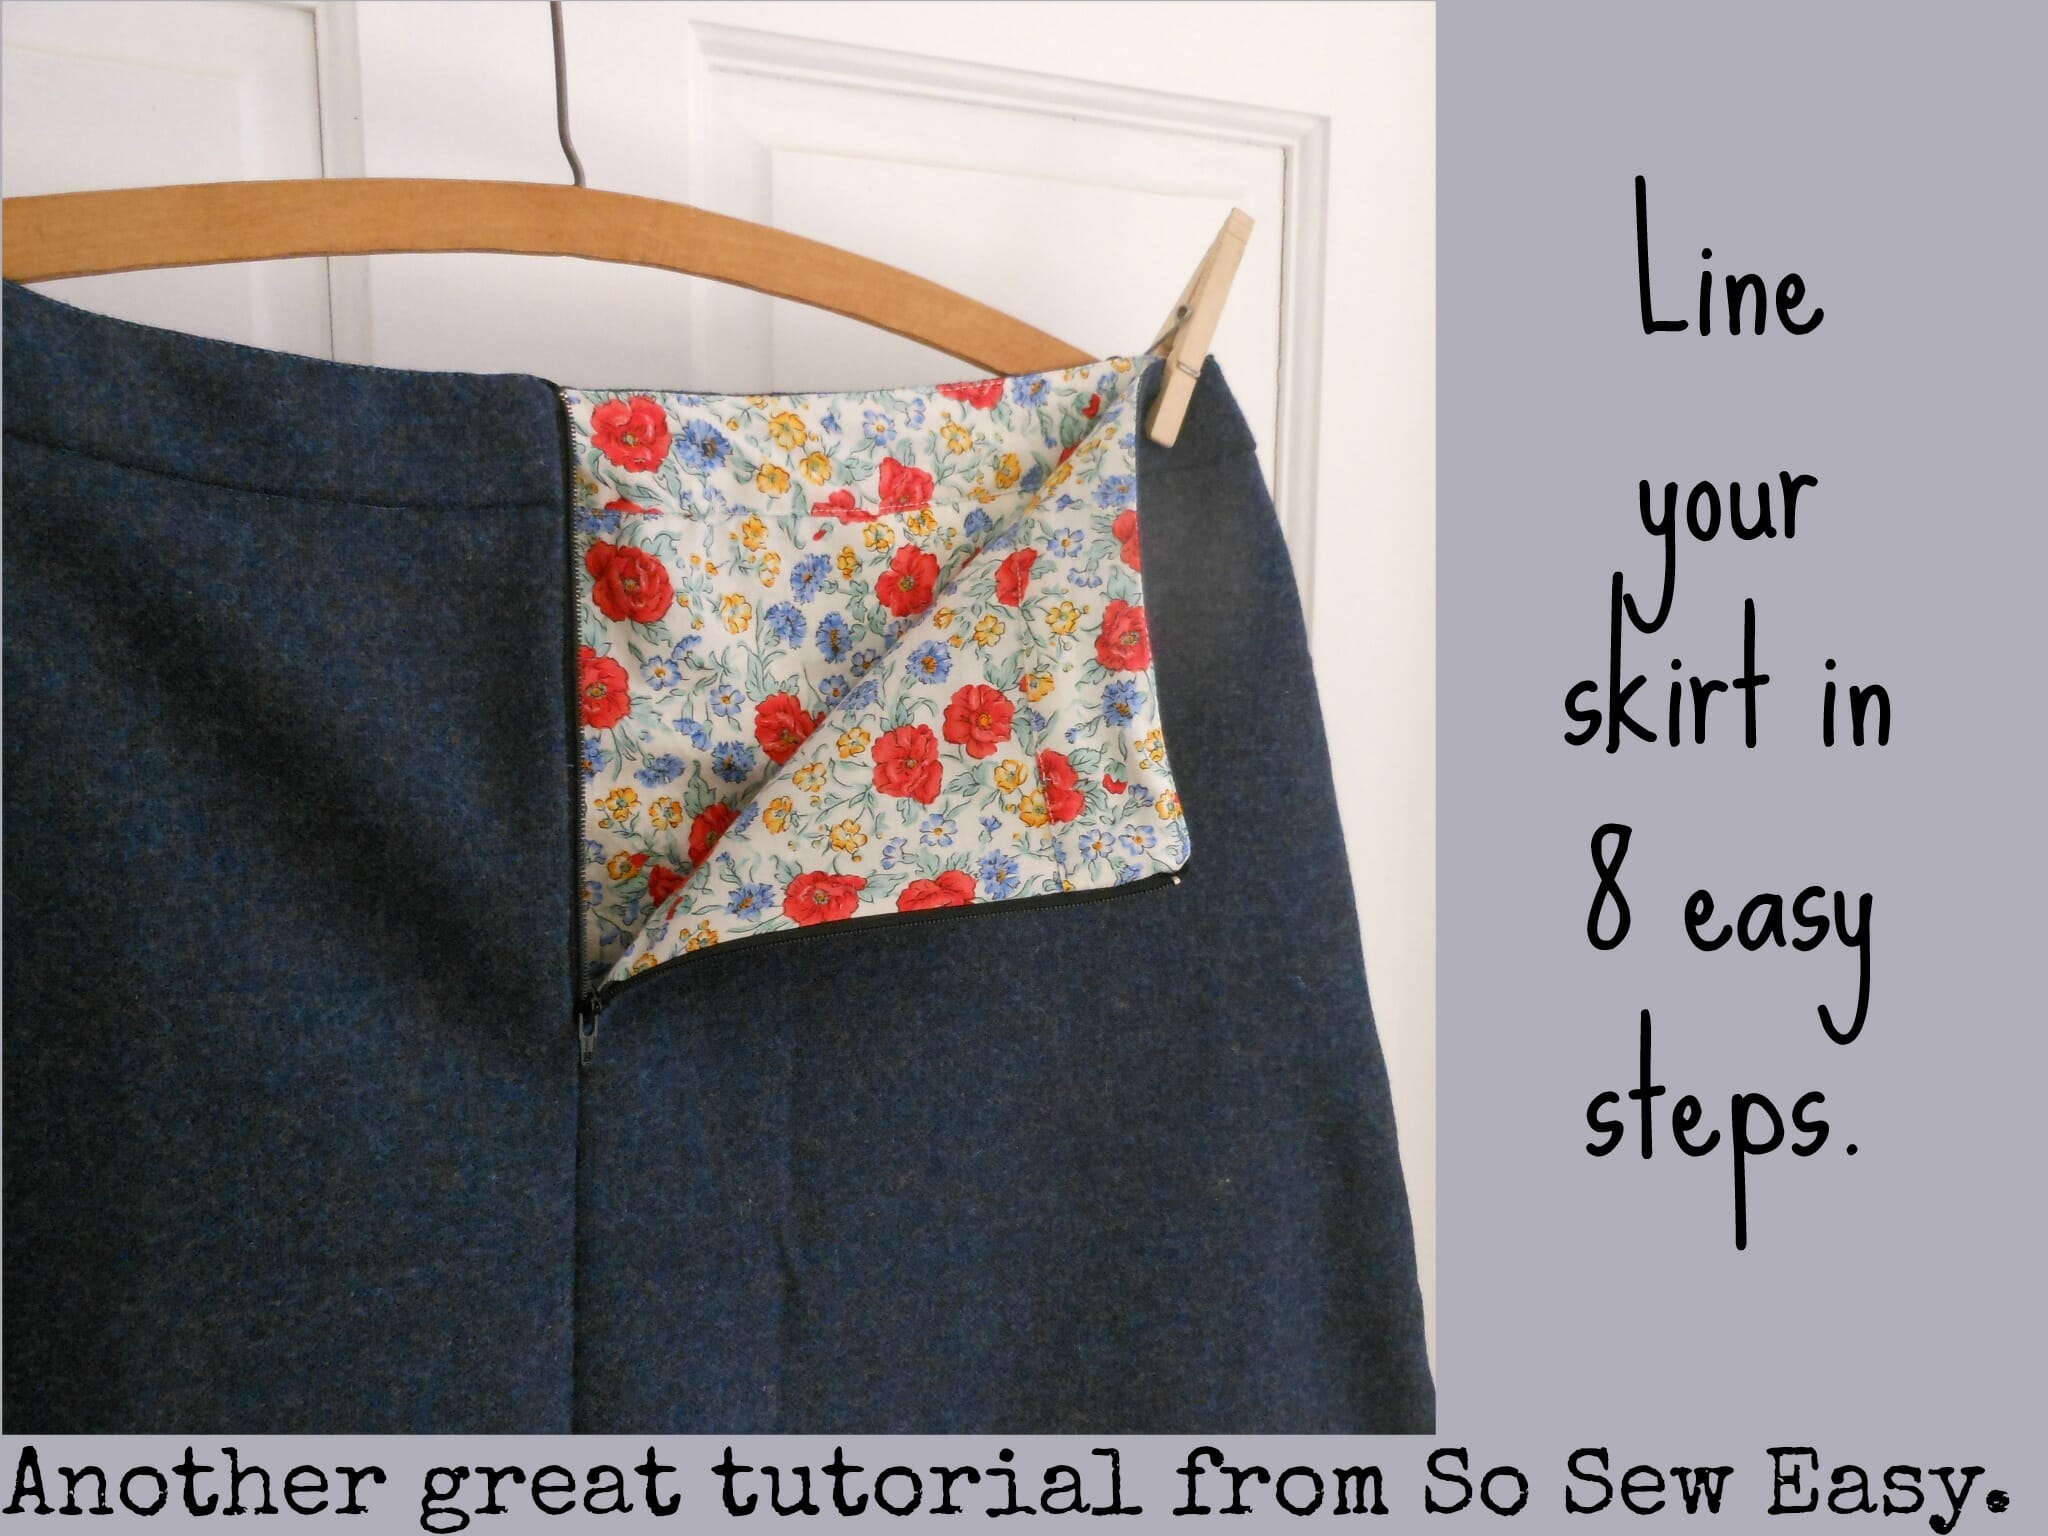 Sewing tutorials so sew easy how to line a skirt ah ha moment here this is so straightforward jeuxipadfo Image collections